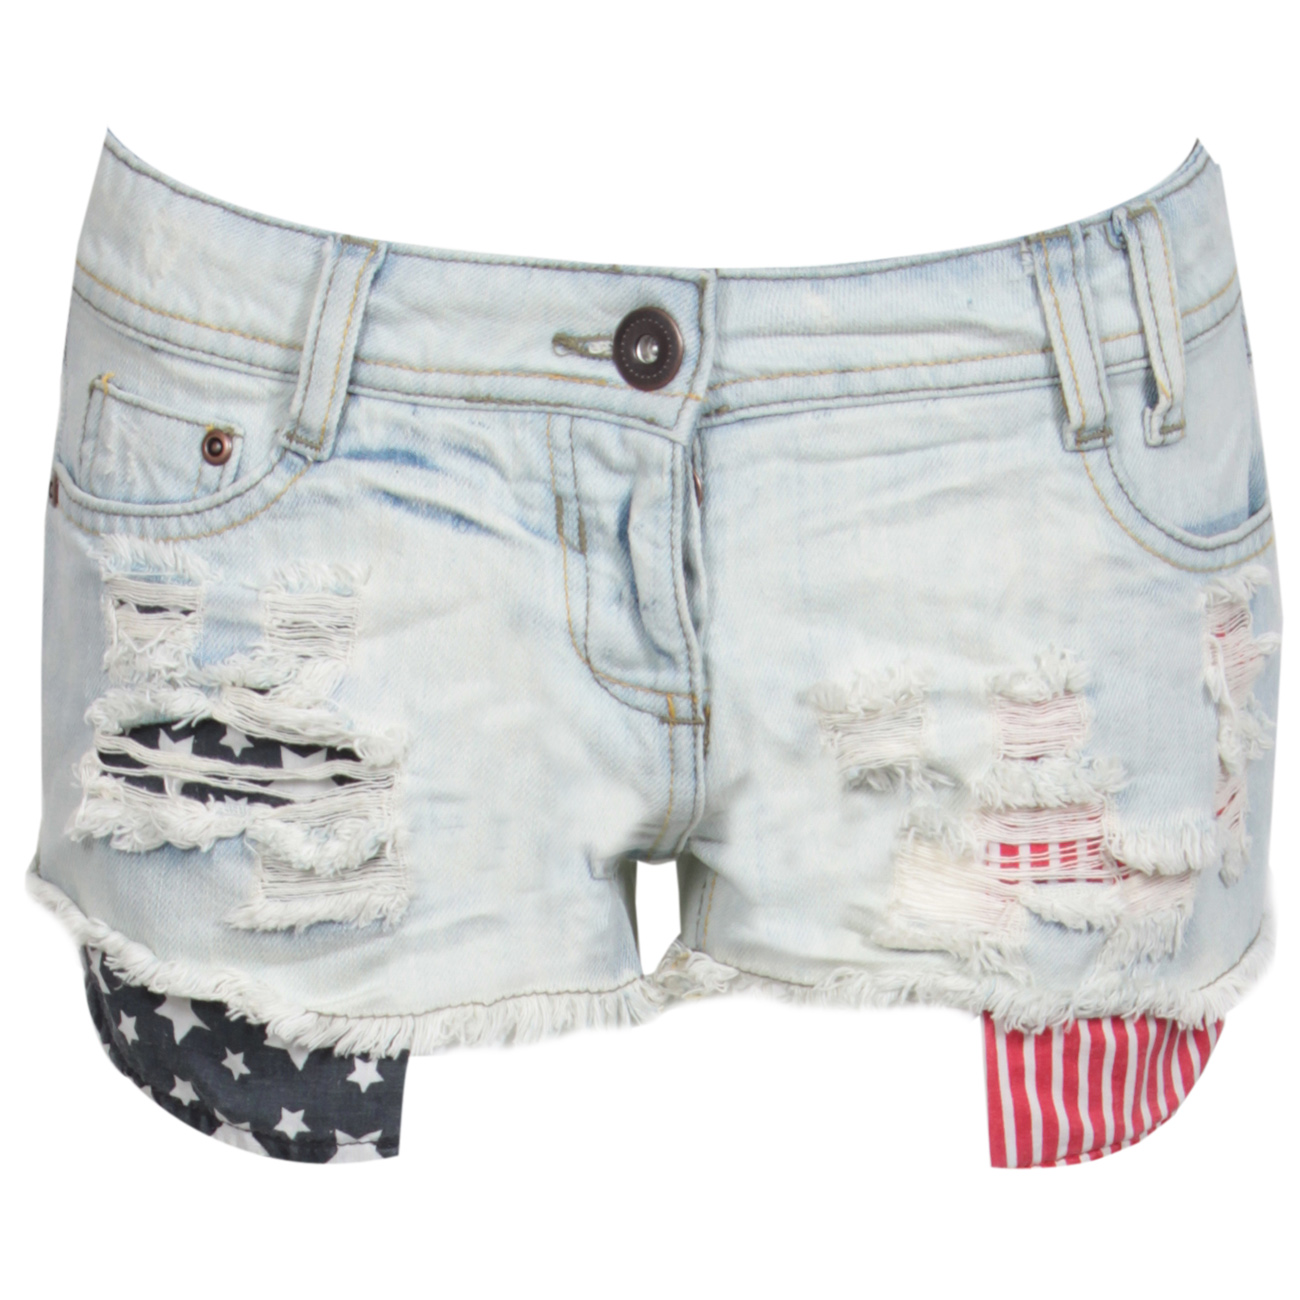 NEW WOMENS AMERICAN FLAG STONE WASH DENIM SHORTS DISTRESSED USA 6 ...